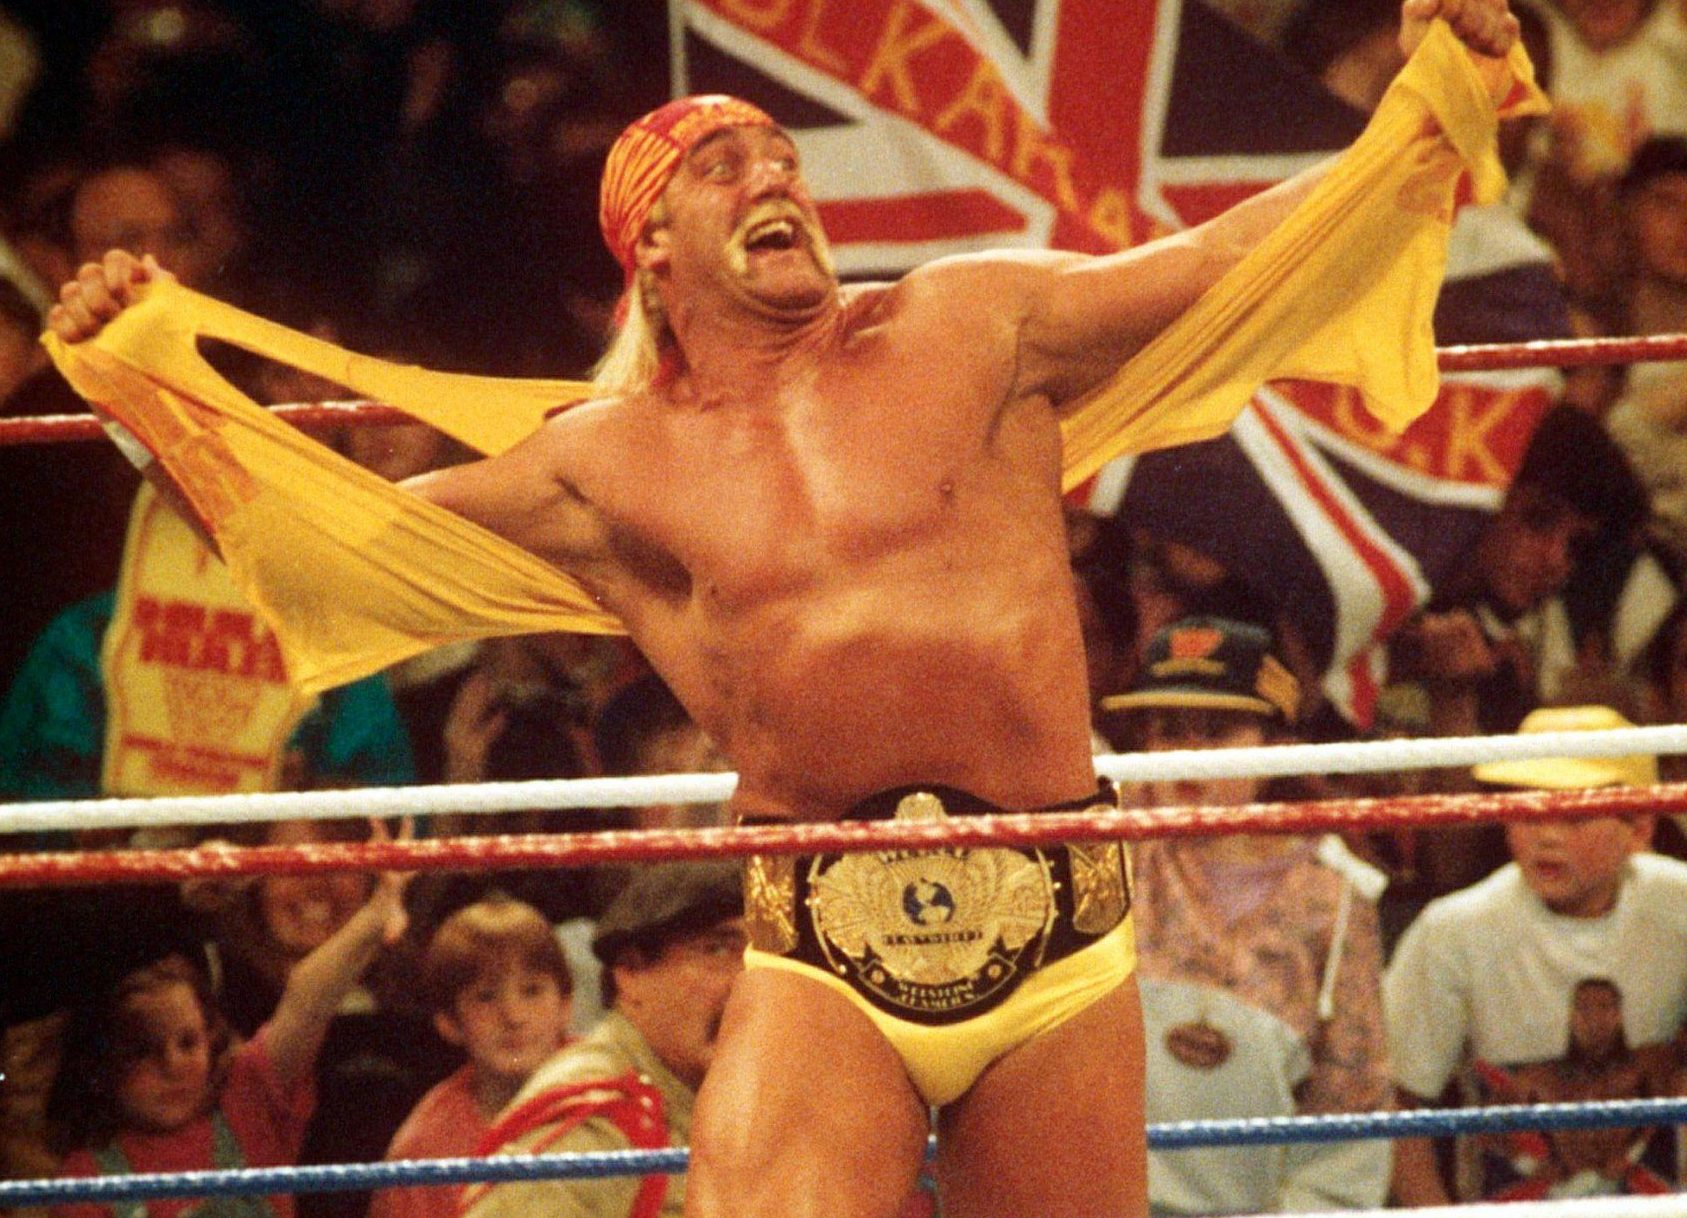 Hulk Hogan 'hugged and cheered' by wrestlers following WWE return at Extreme Rules